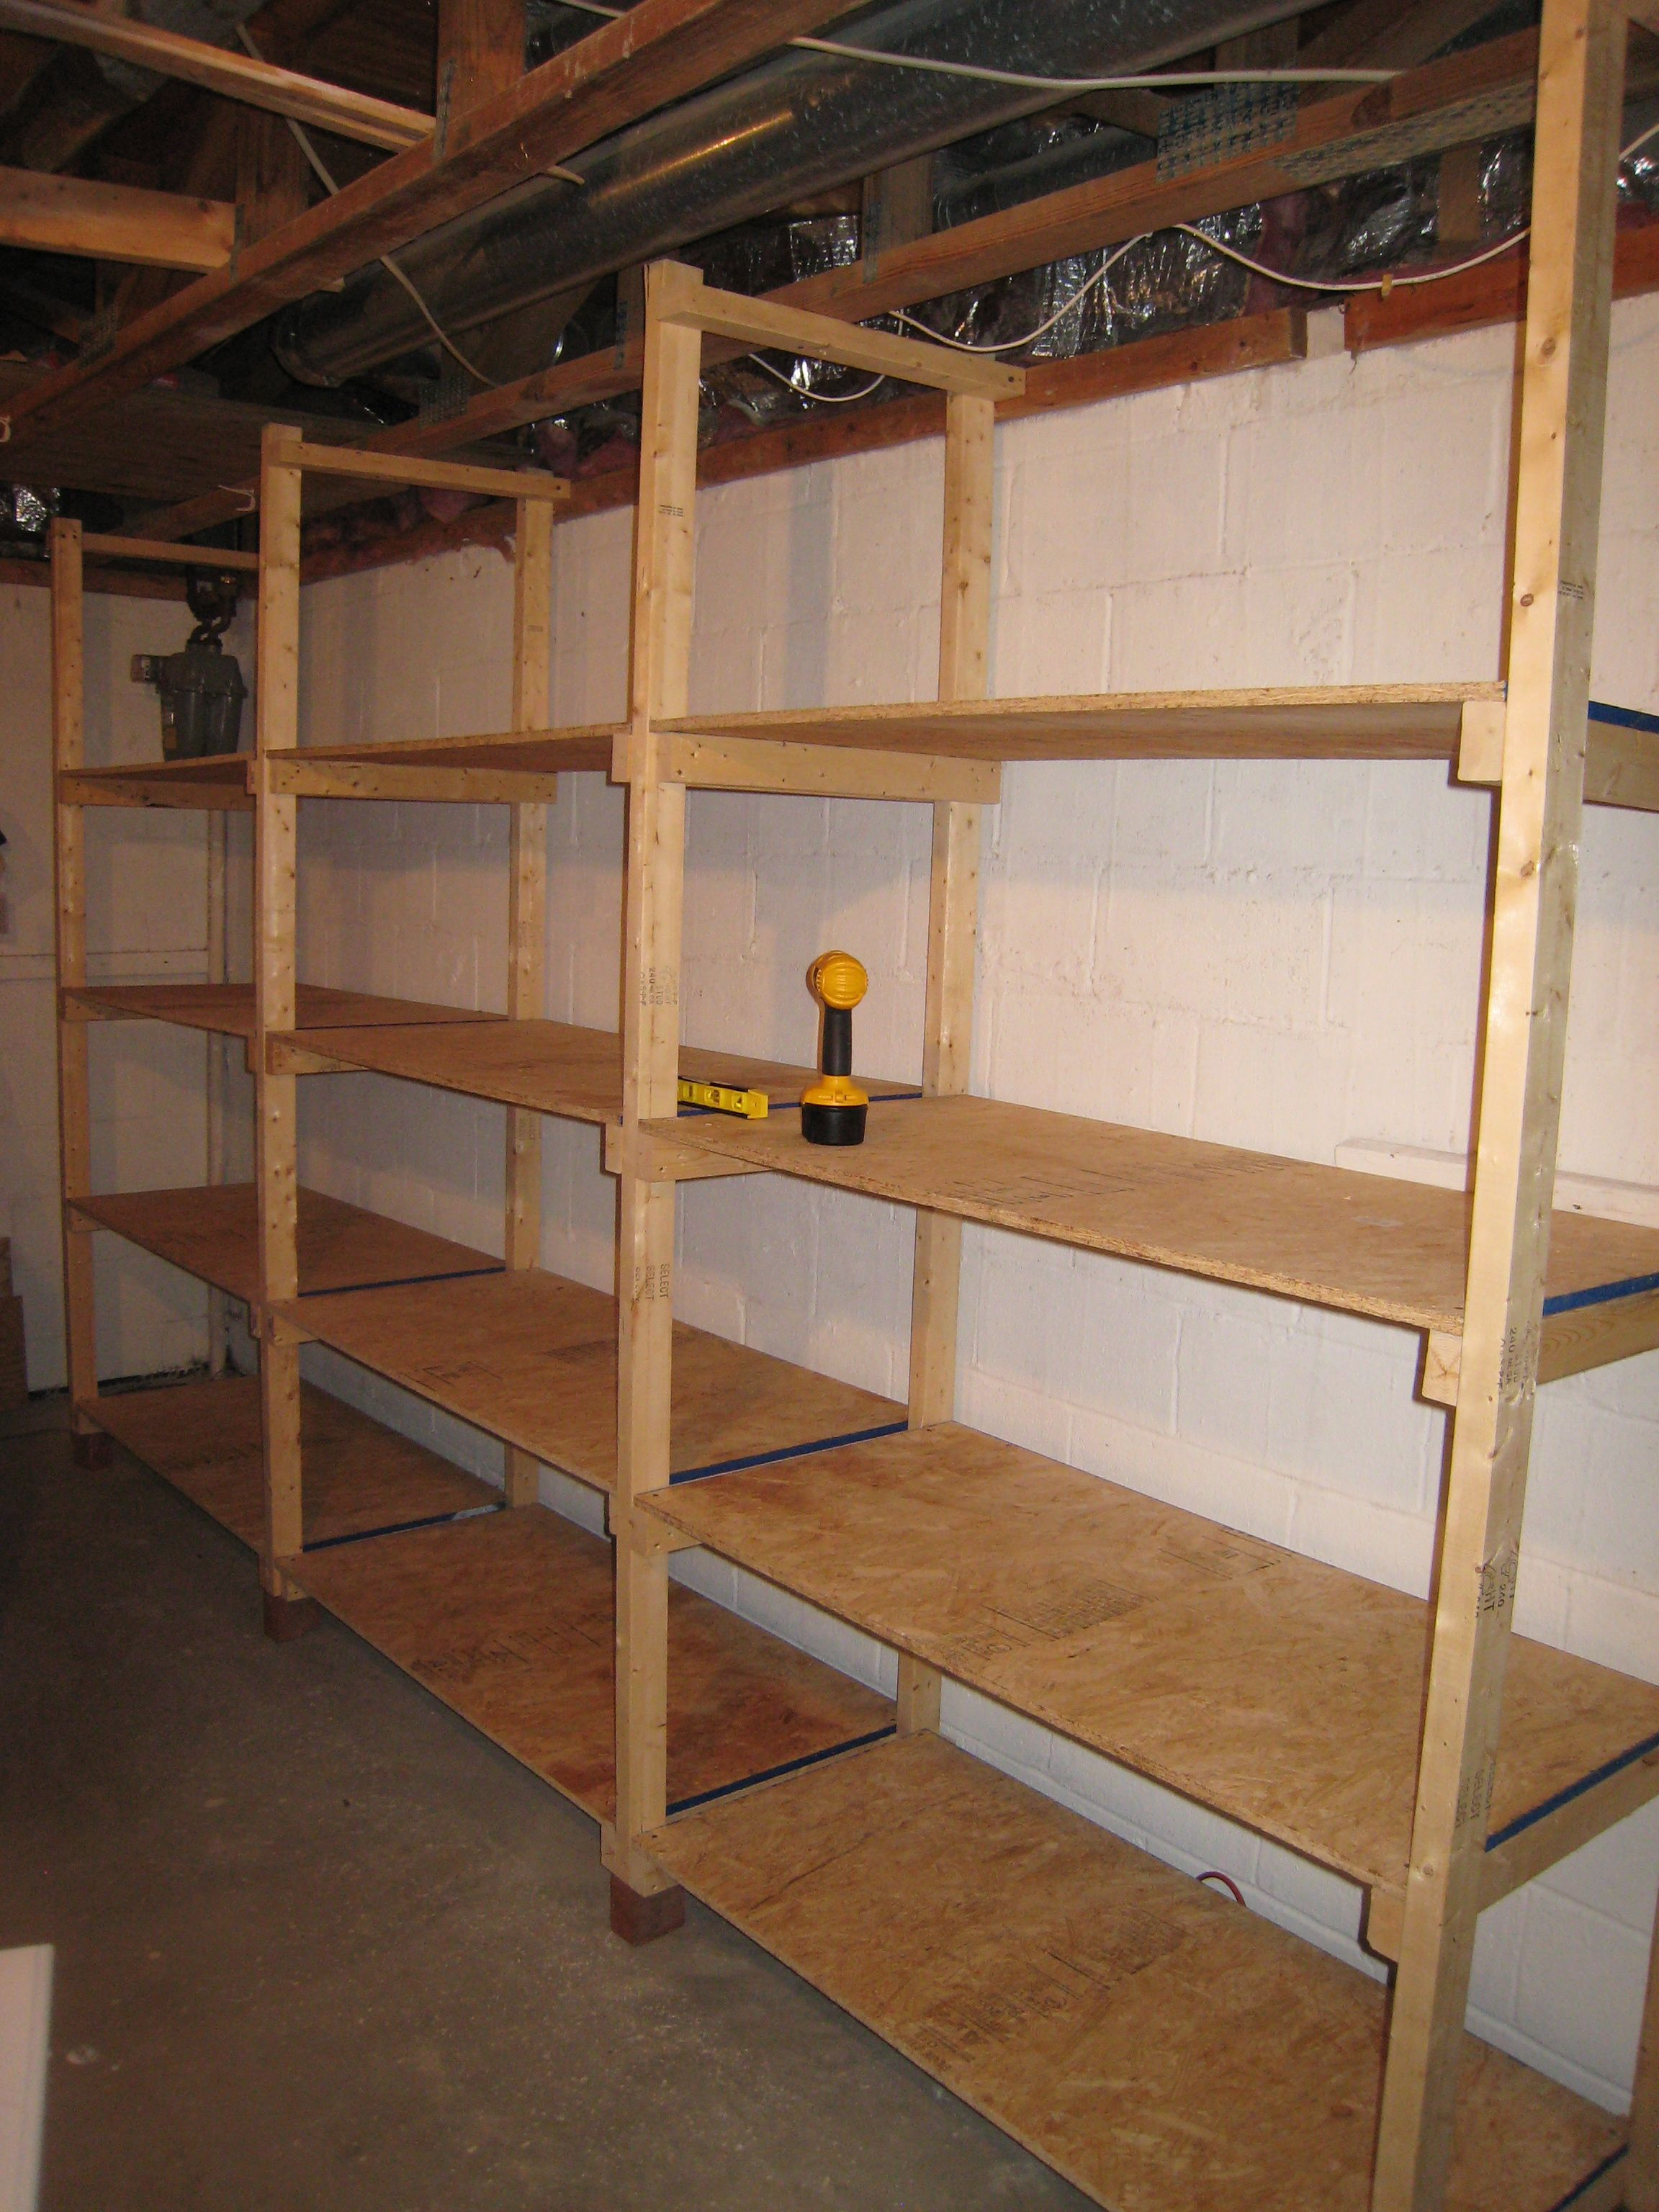 emergency cold food gallery pantries and shelving shelves storage jb shelf photo